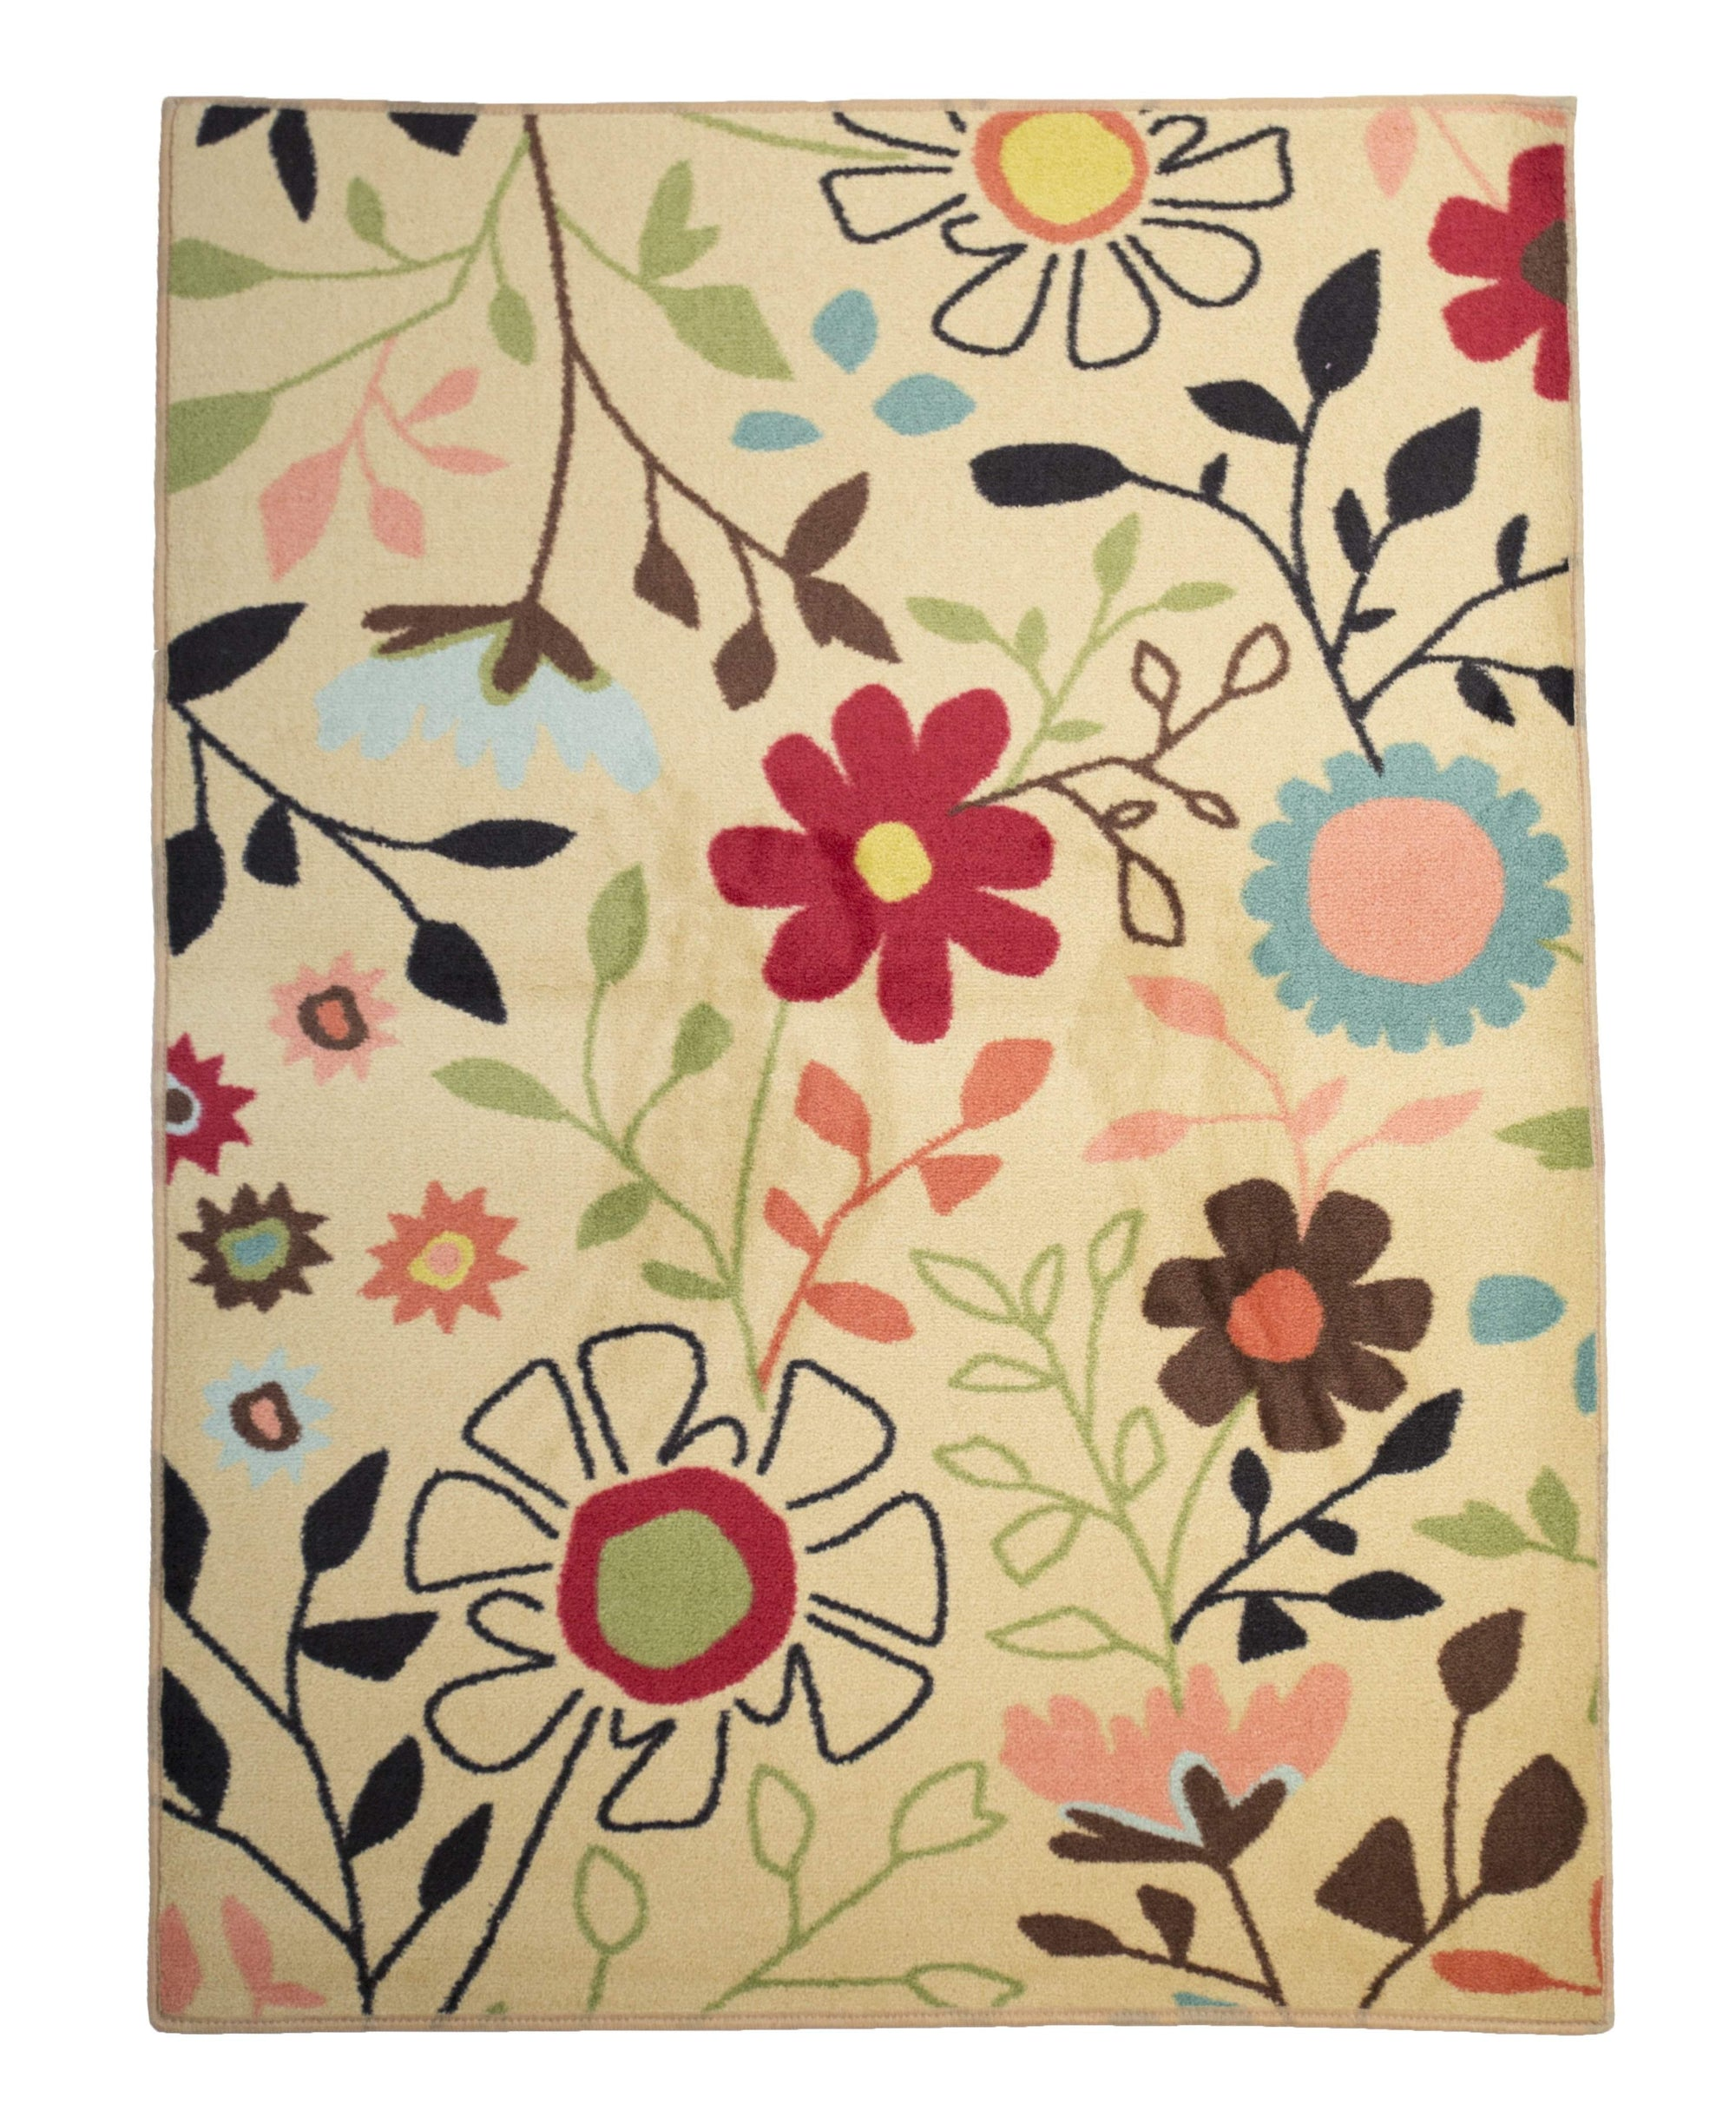 Fun Flower Pedal Girl Room Area Rug-Rug Shop and More